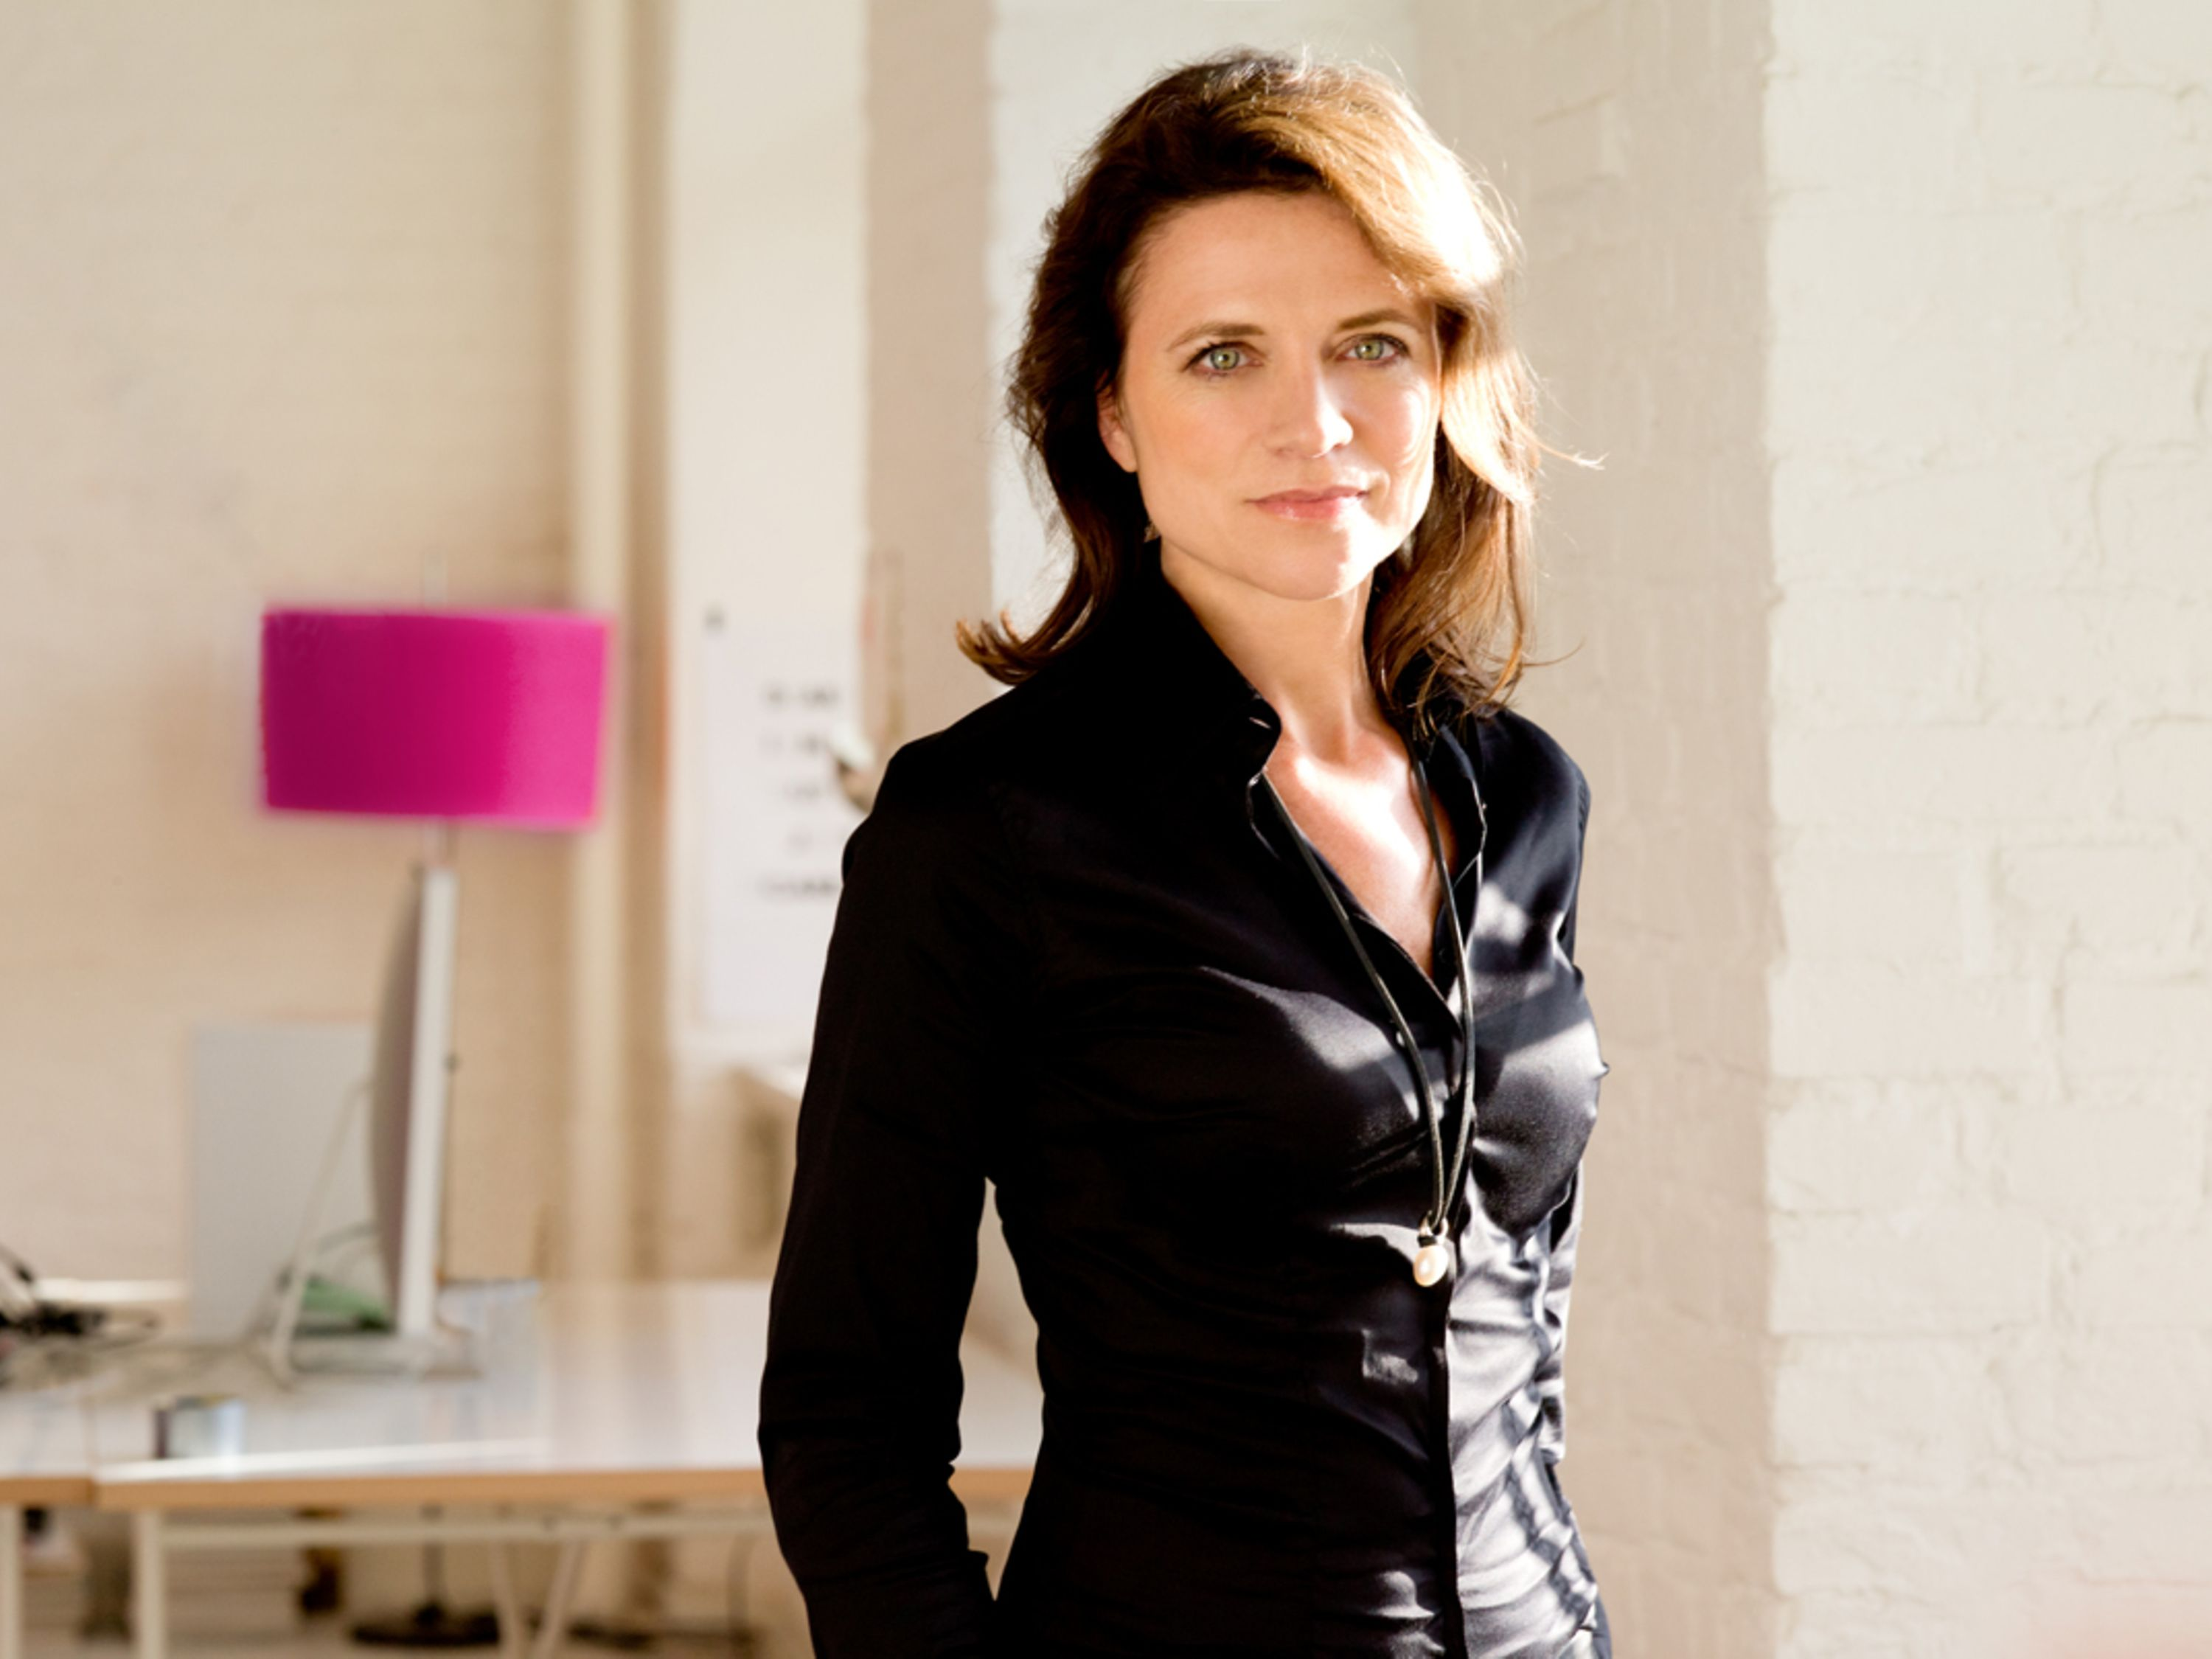 Antje Hundhausen, Head of 3D Brand Experience